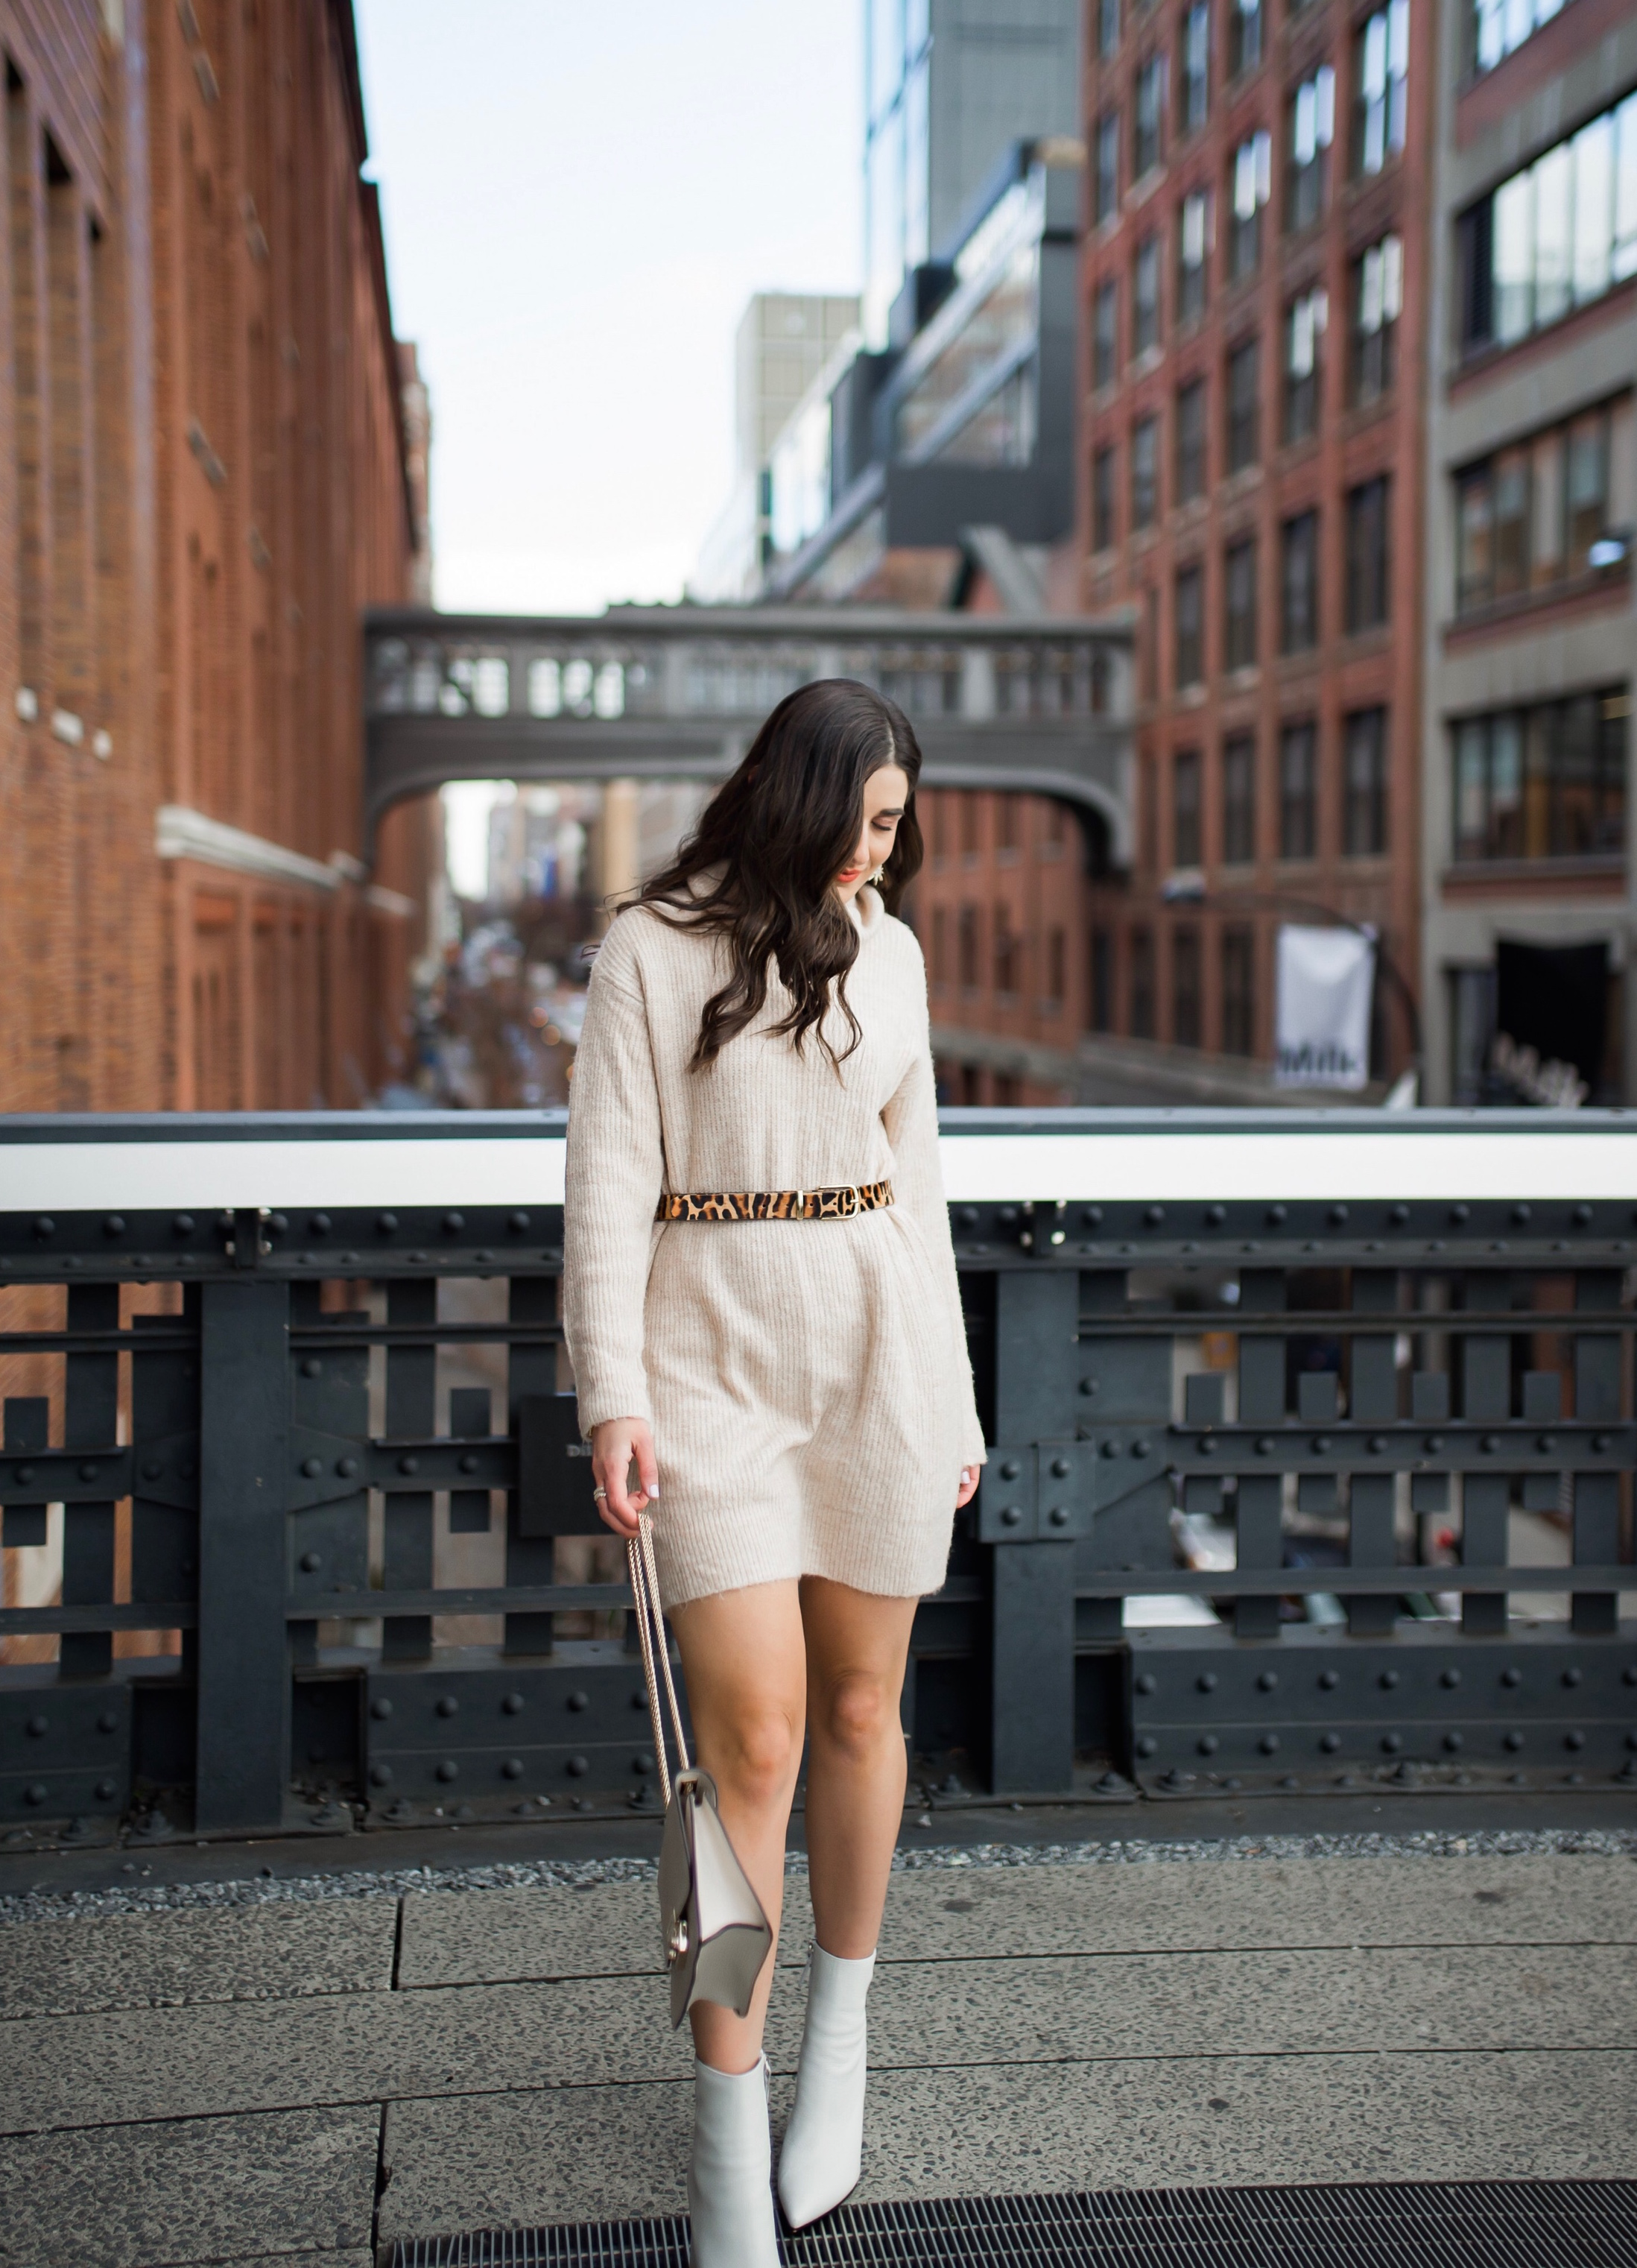 Why Blogging Is Far From Freeloading Beige Sweater Dress White Booties Esther Santer Fashion Blog NYC Street Style Blogger Outfit OOTD Trendy Shopping Leopard Belt Neutral Winter How To Wear Shop  Sale Mango Jcrew Inspiration The High Line Photoshoot.jpg